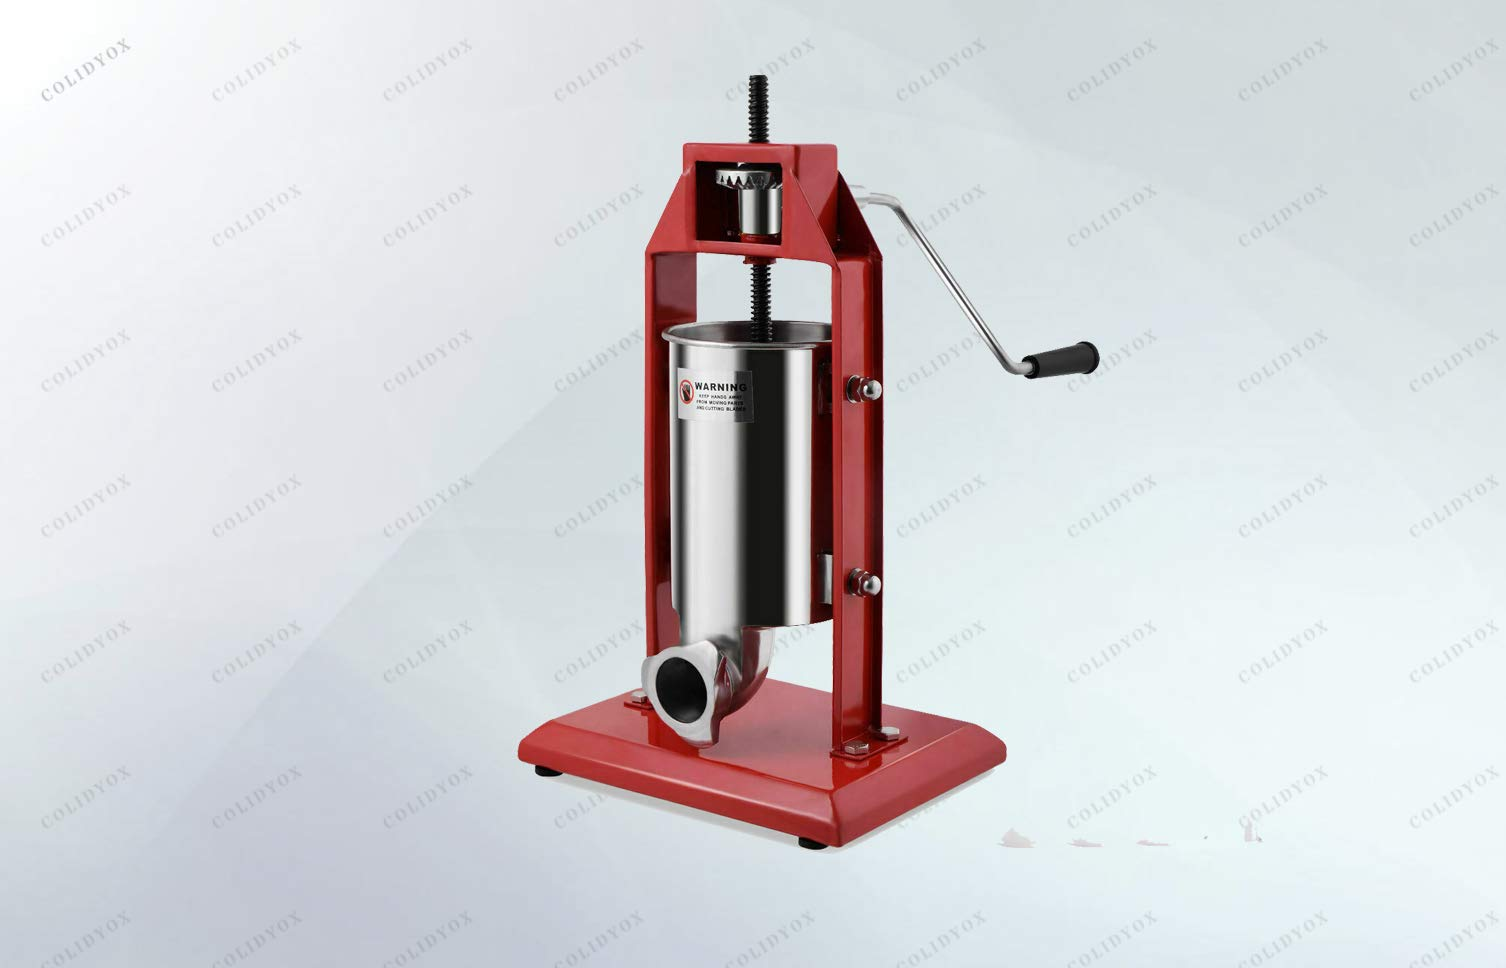 COLIDYOX>>>3L Vertical Sausage Stuffer Meat Maker It is easy to operate and easy to clean. Simple use the hand crank to push meat through one of 4 provided stuffing funnels to fill the casing of your